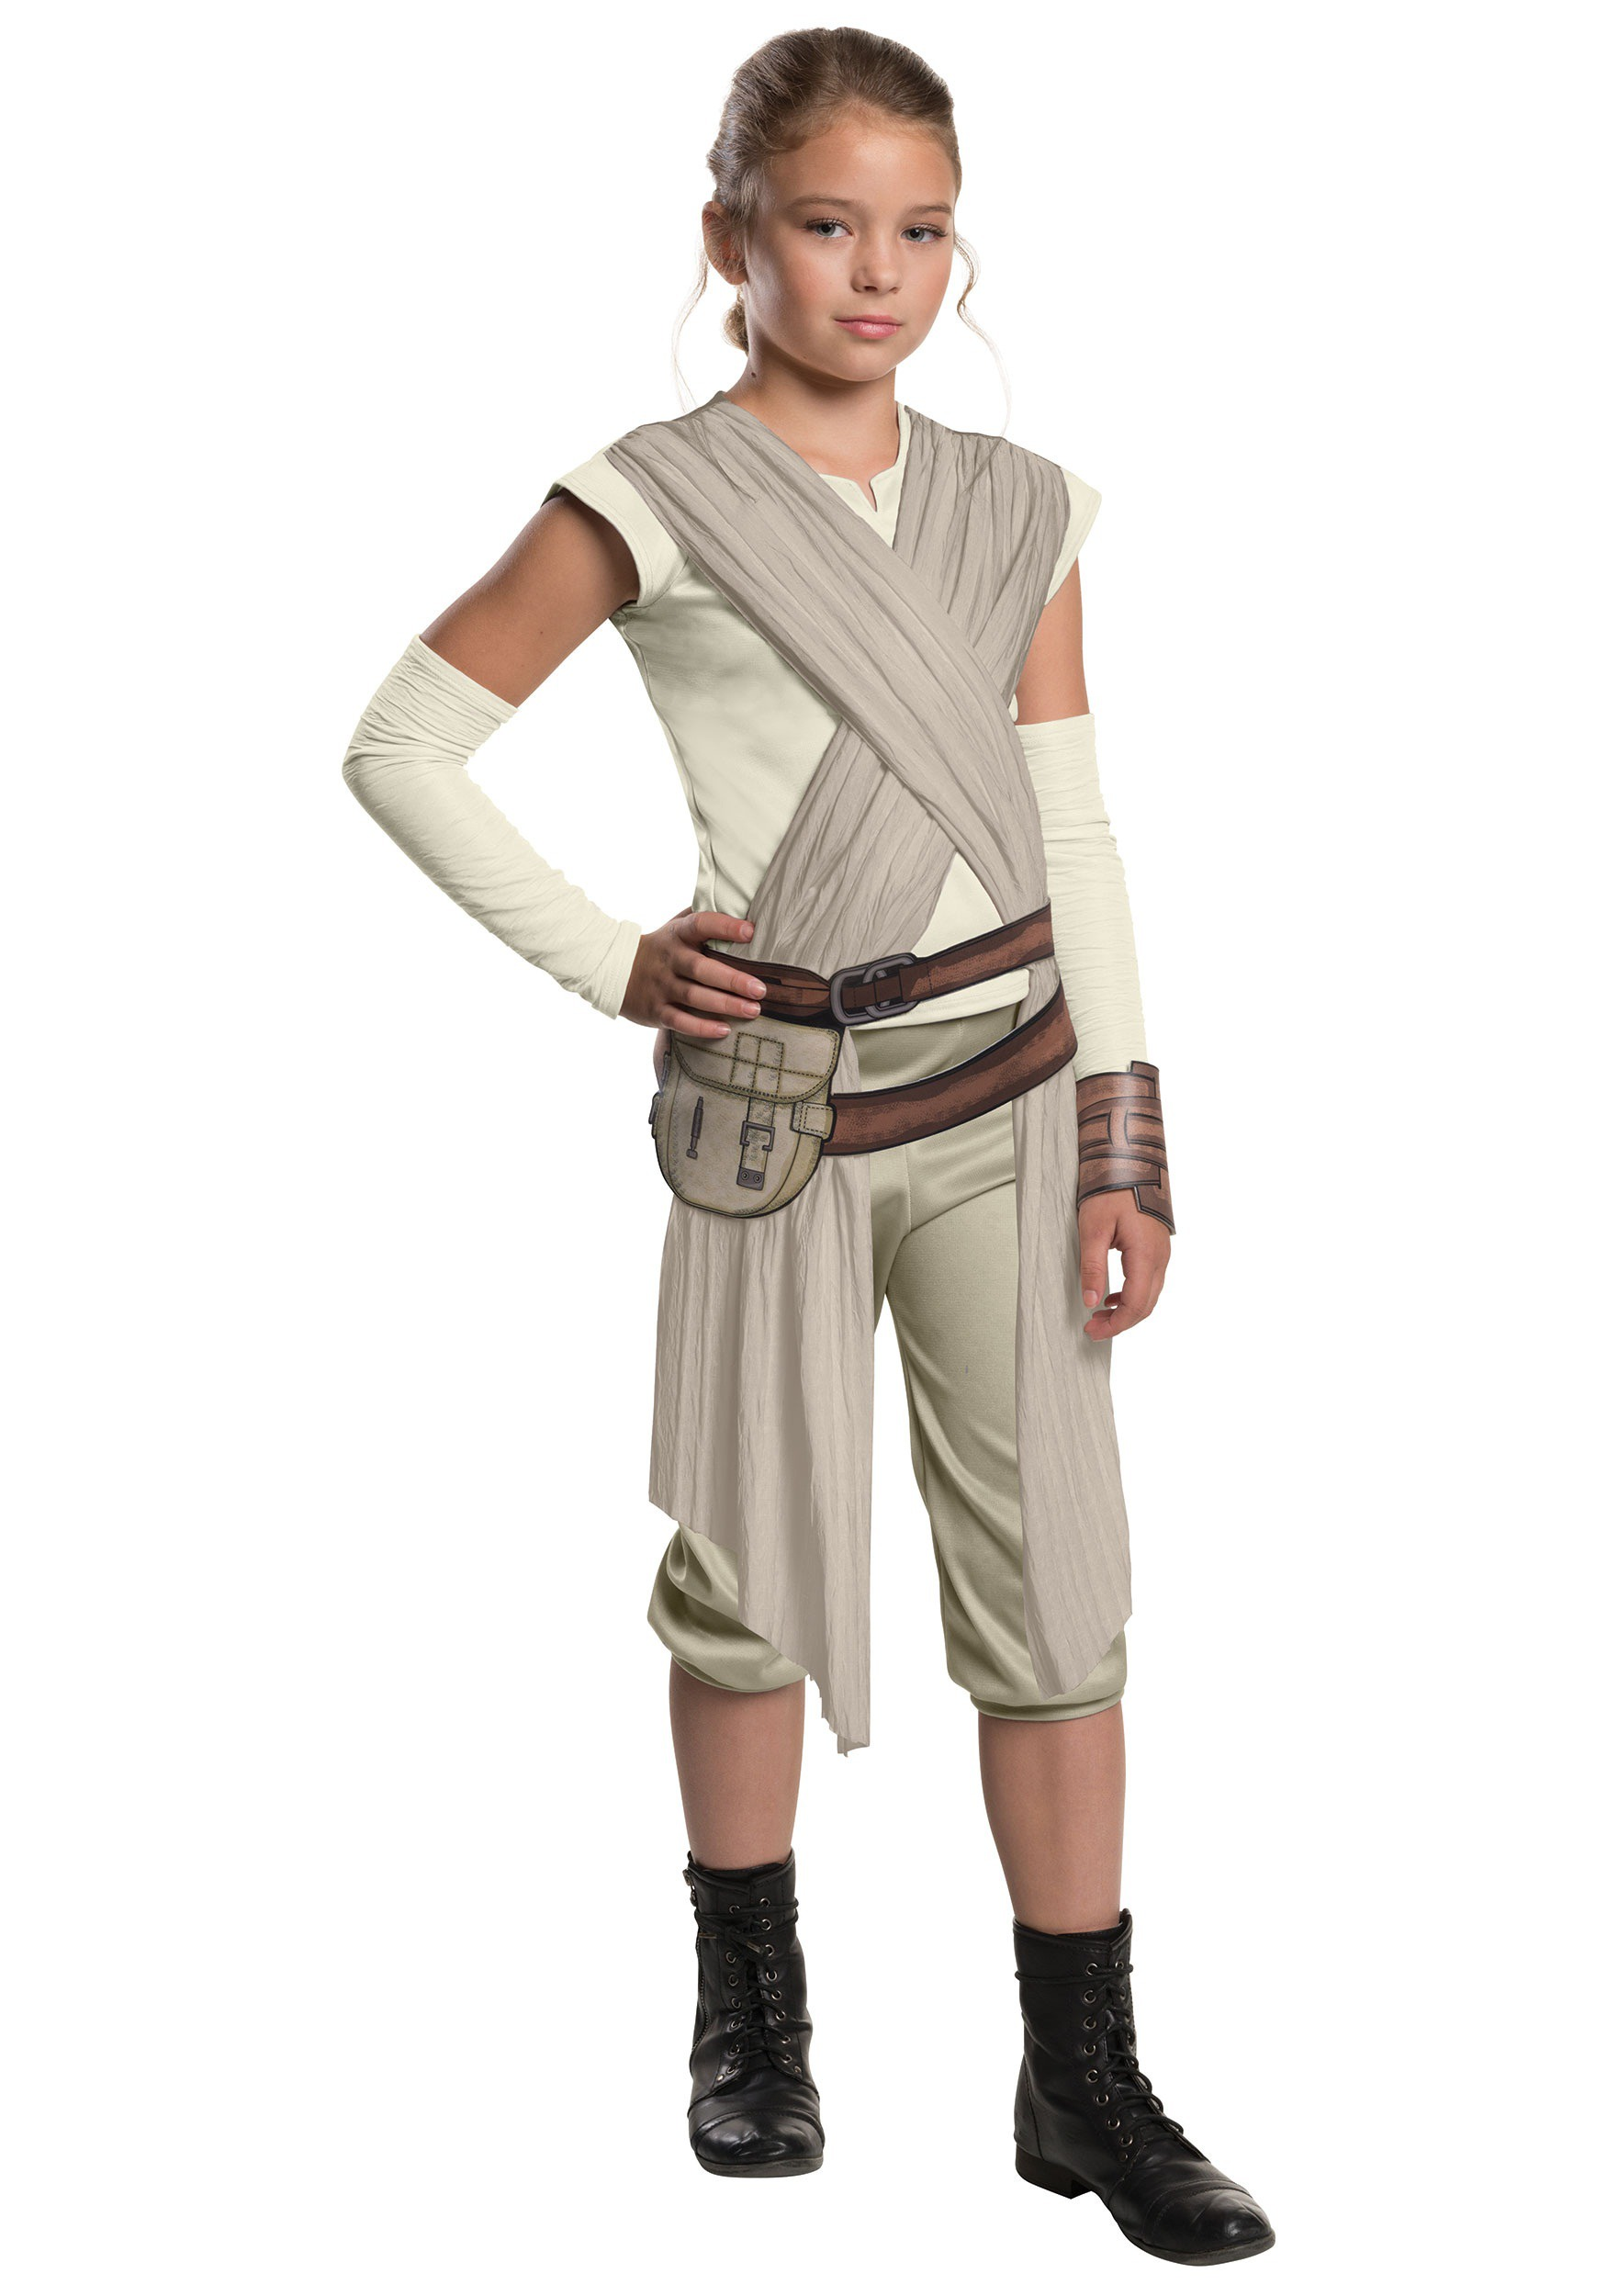 Halloween Movie Costumes movie characters hallowee Child Deluxe Star Wars Ep 7 Rey Costume